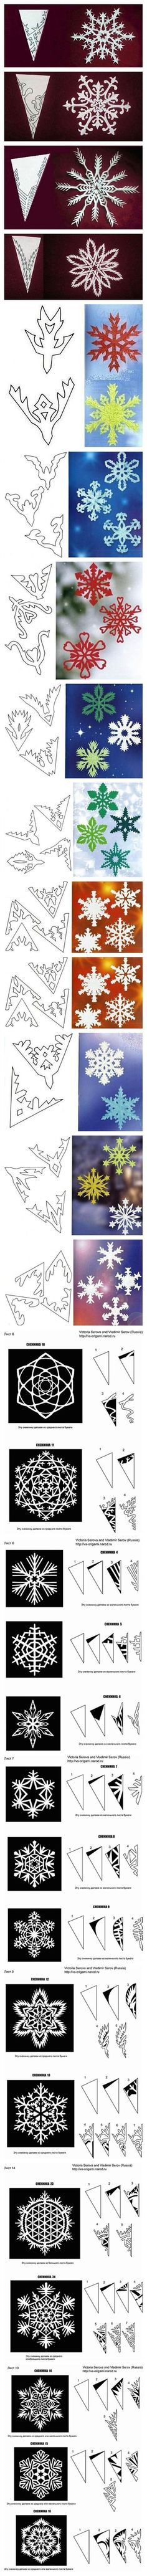 Cut snowflakes out of paper | Miscellaneous | post